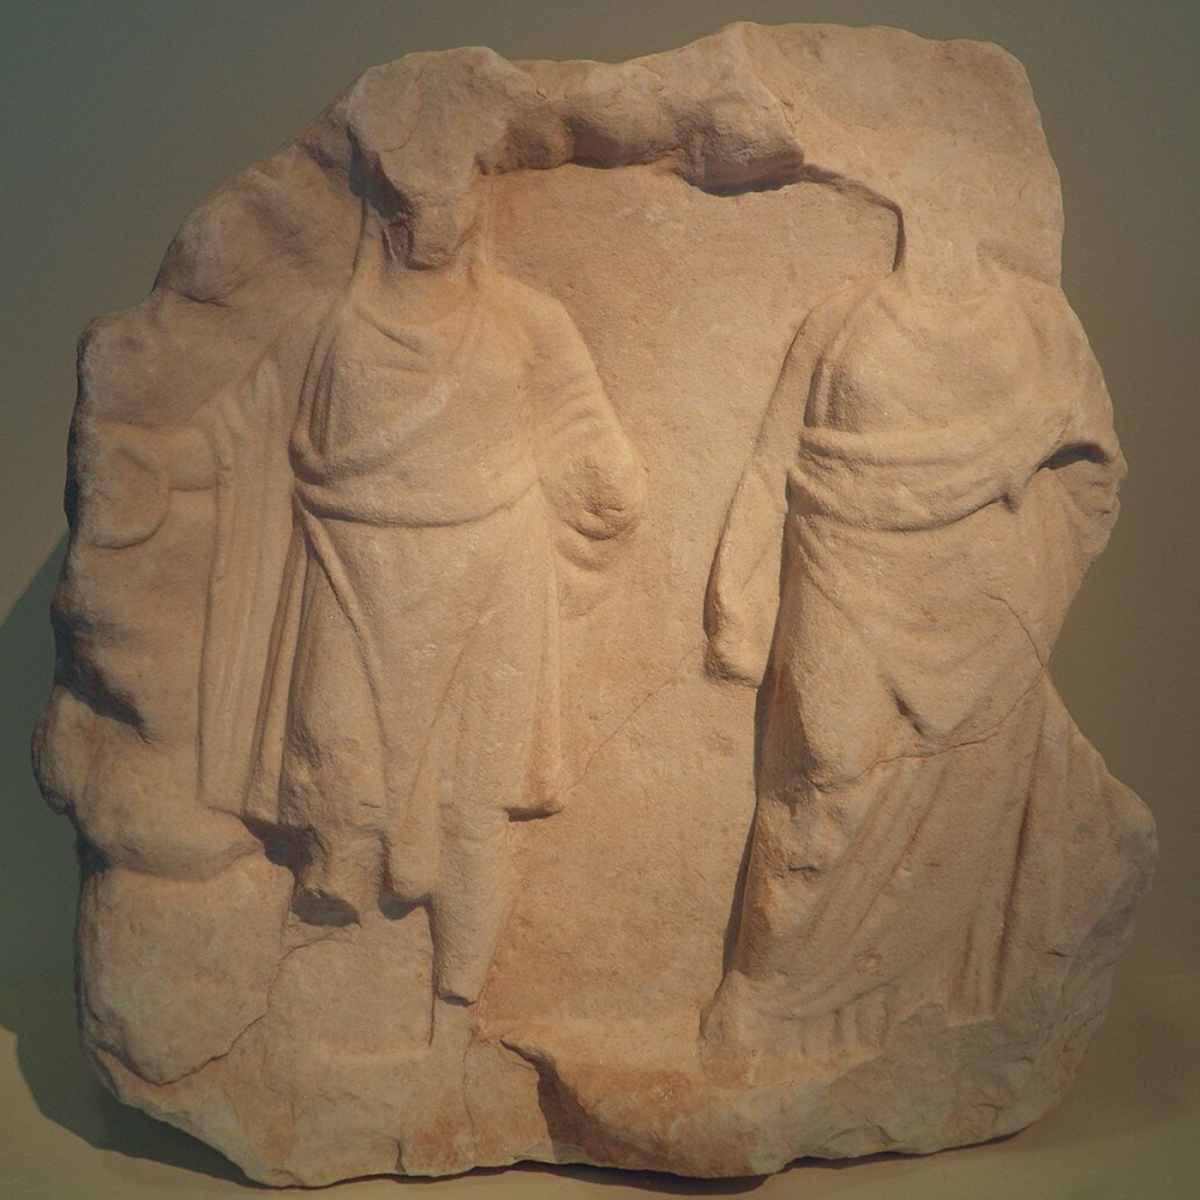 This sculpture depicts the goddess Cybele and her human lover, Attis, in whose honor Hilaria was celebrated.